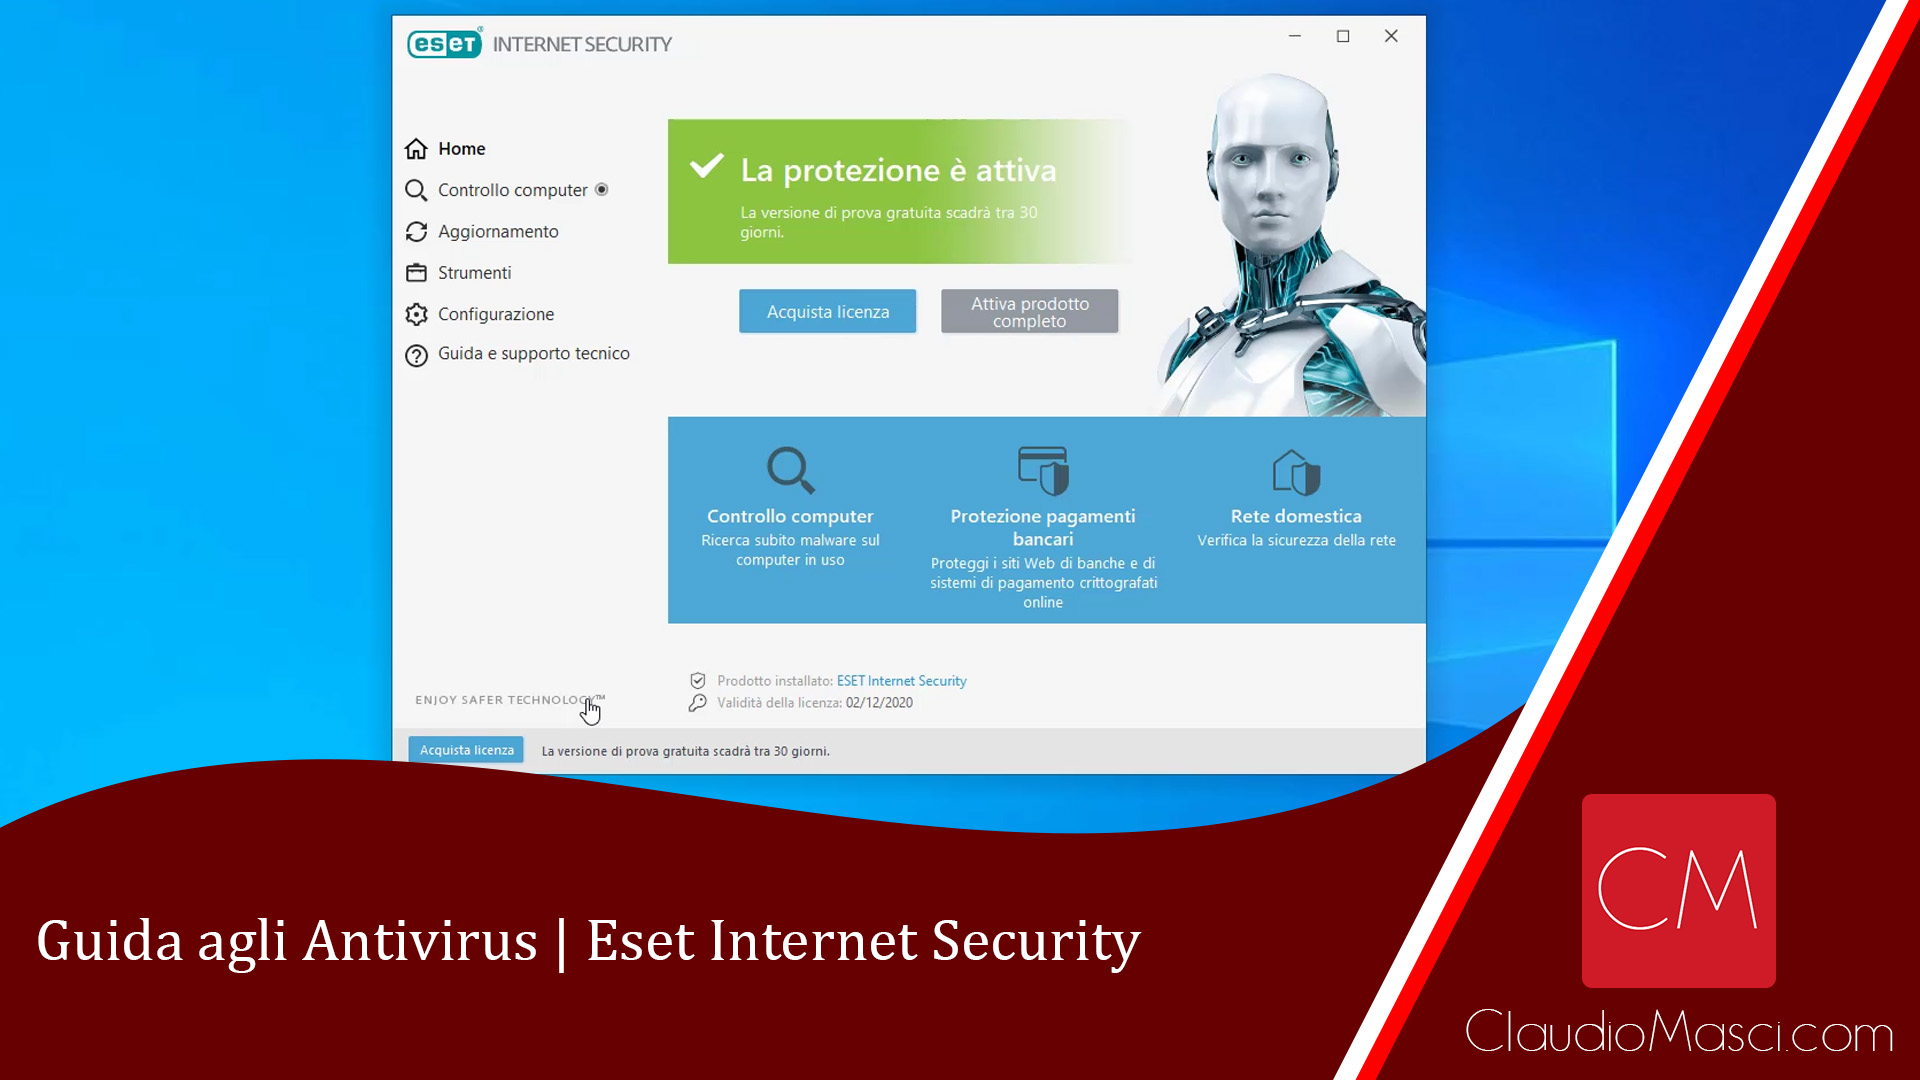 Guida agli Antivirus | Eset Internet Security